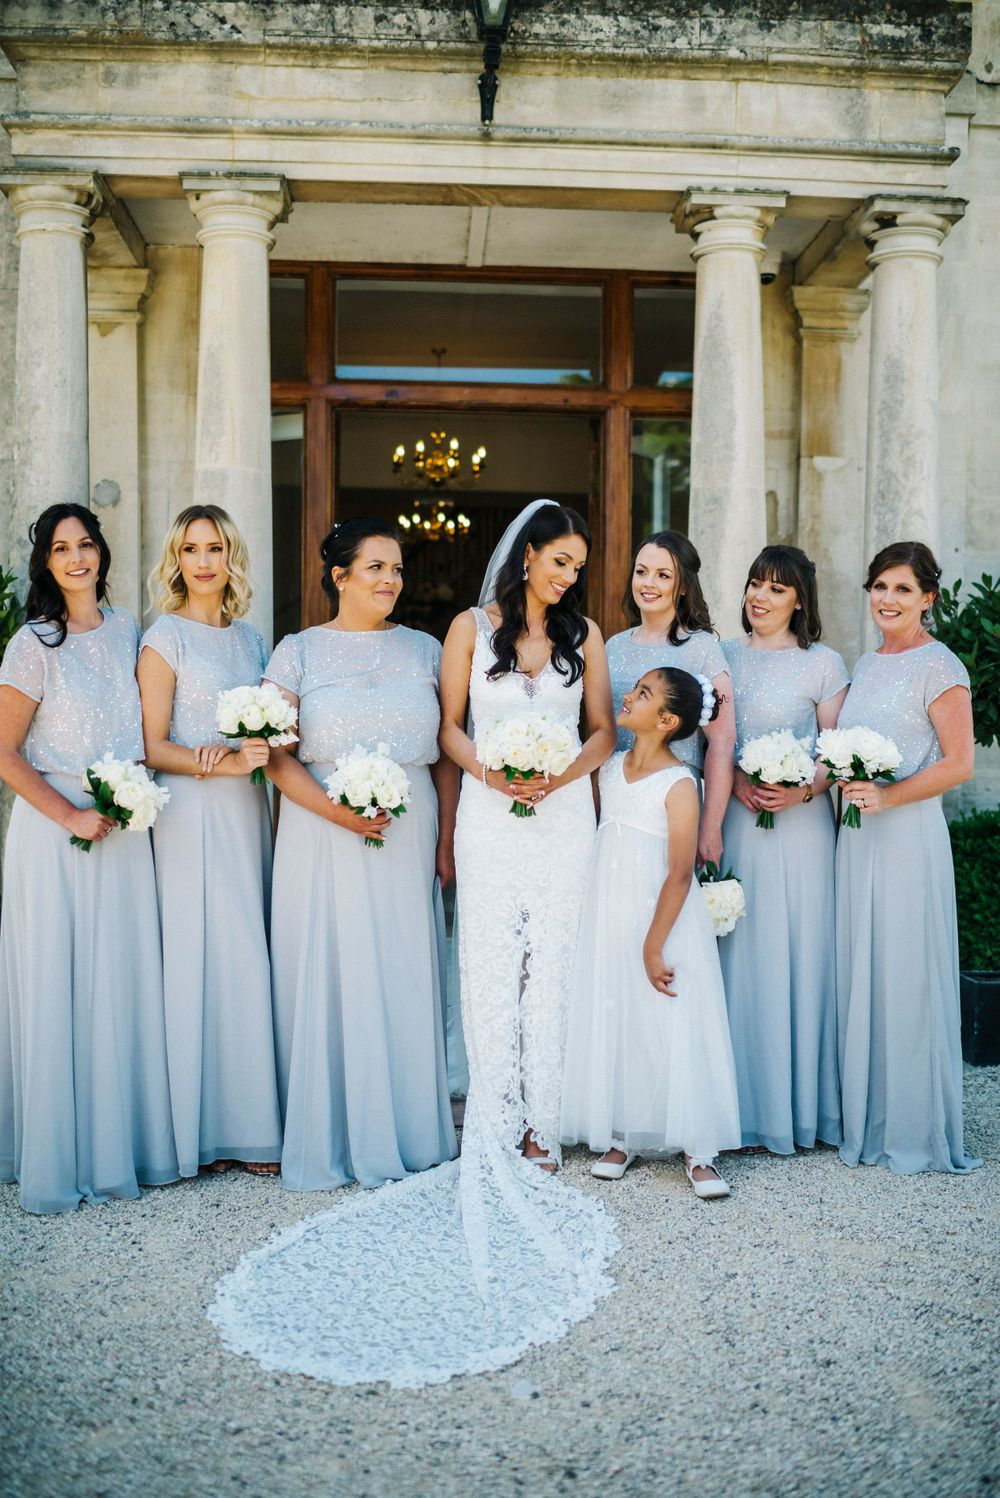 Bride and bridesmaids, Cotswolds wedding photographer, grace loves lace wedding dress, lace train, bridesmaids in blue